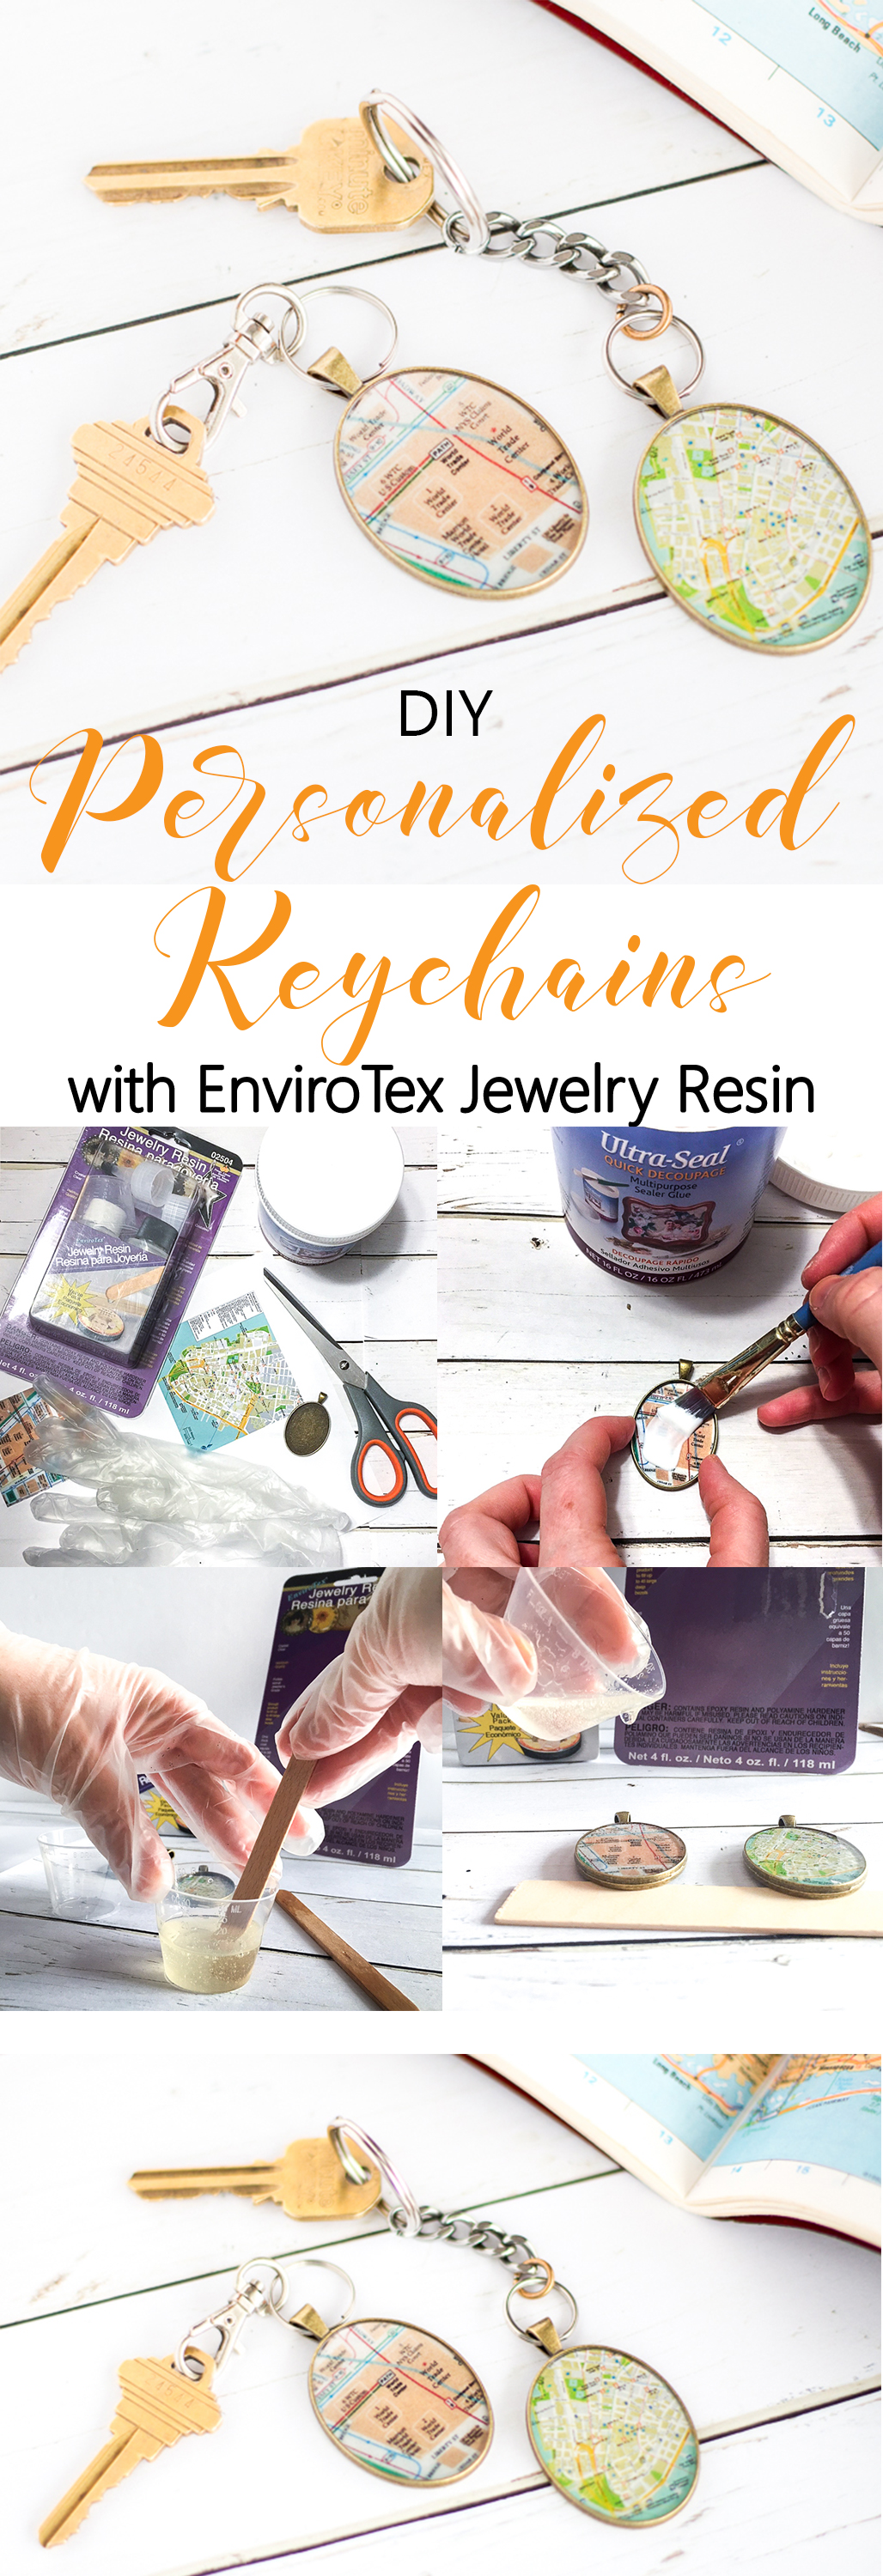 How to Make Personalized Keychains with EnviroTex Jewelry